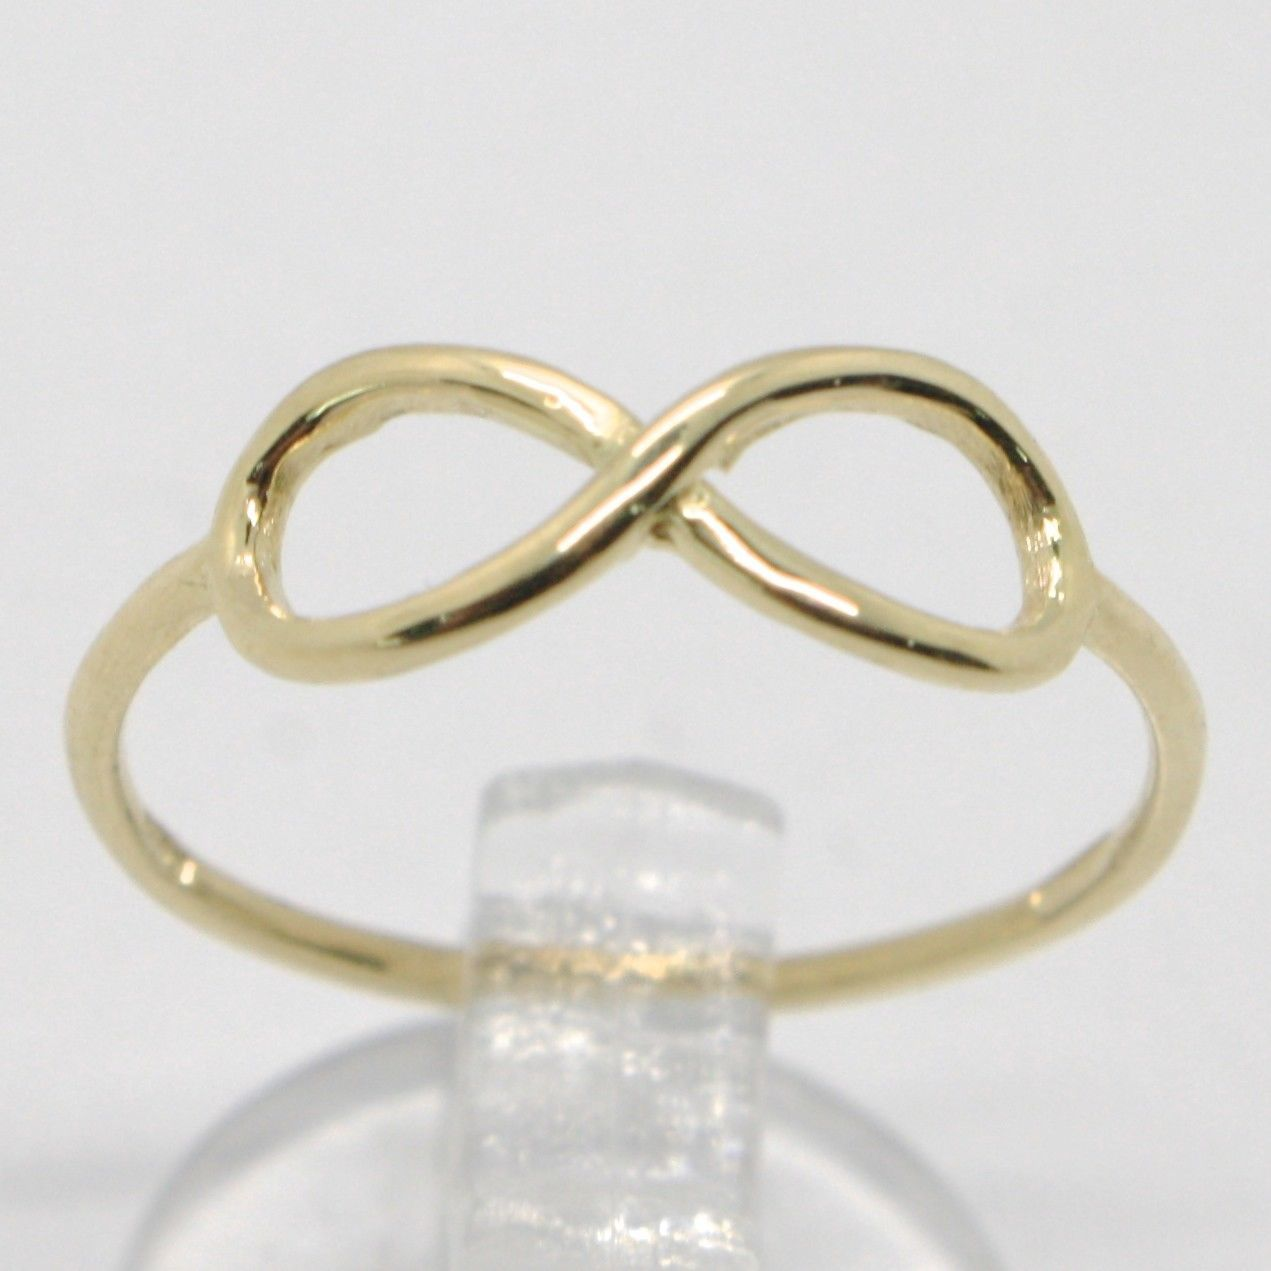 18K YELLOW GOLD INFINITE CENTRAL RING, INFINITY, SMOOTH, BRIGHT, MADE IN ITALY